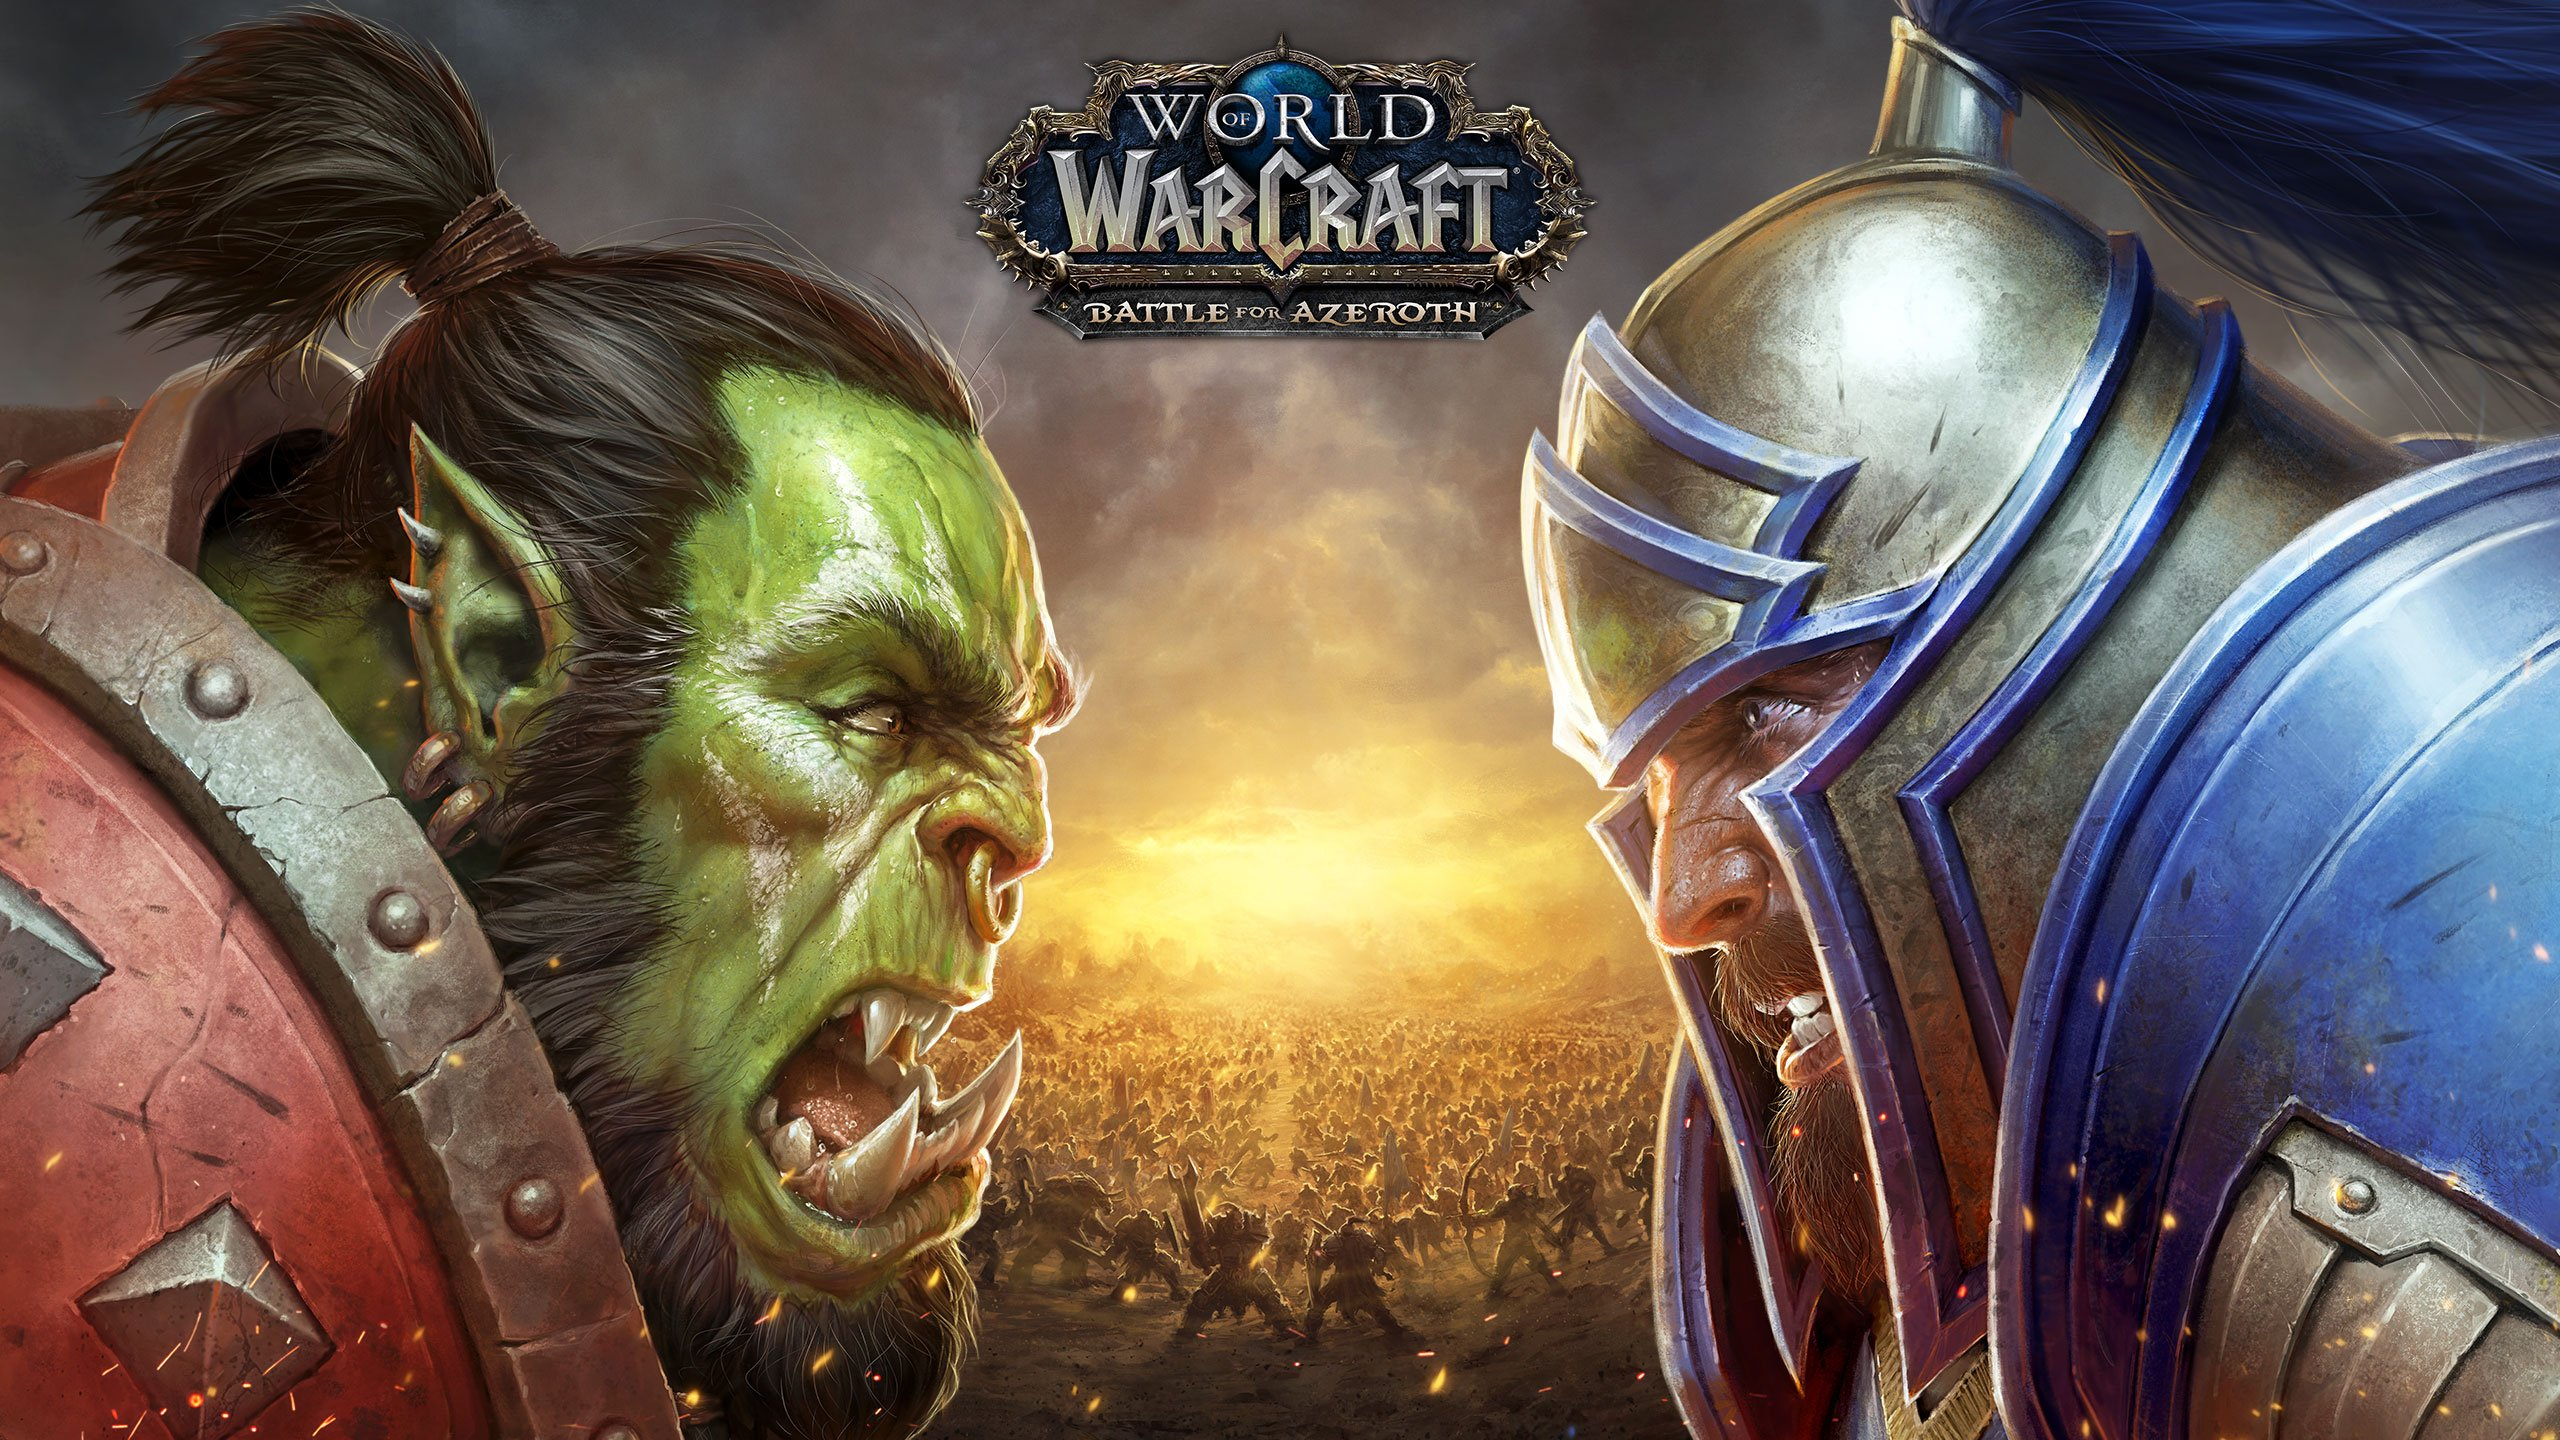 World of Warcraft Battle for Azeroth - Orc vs Humano